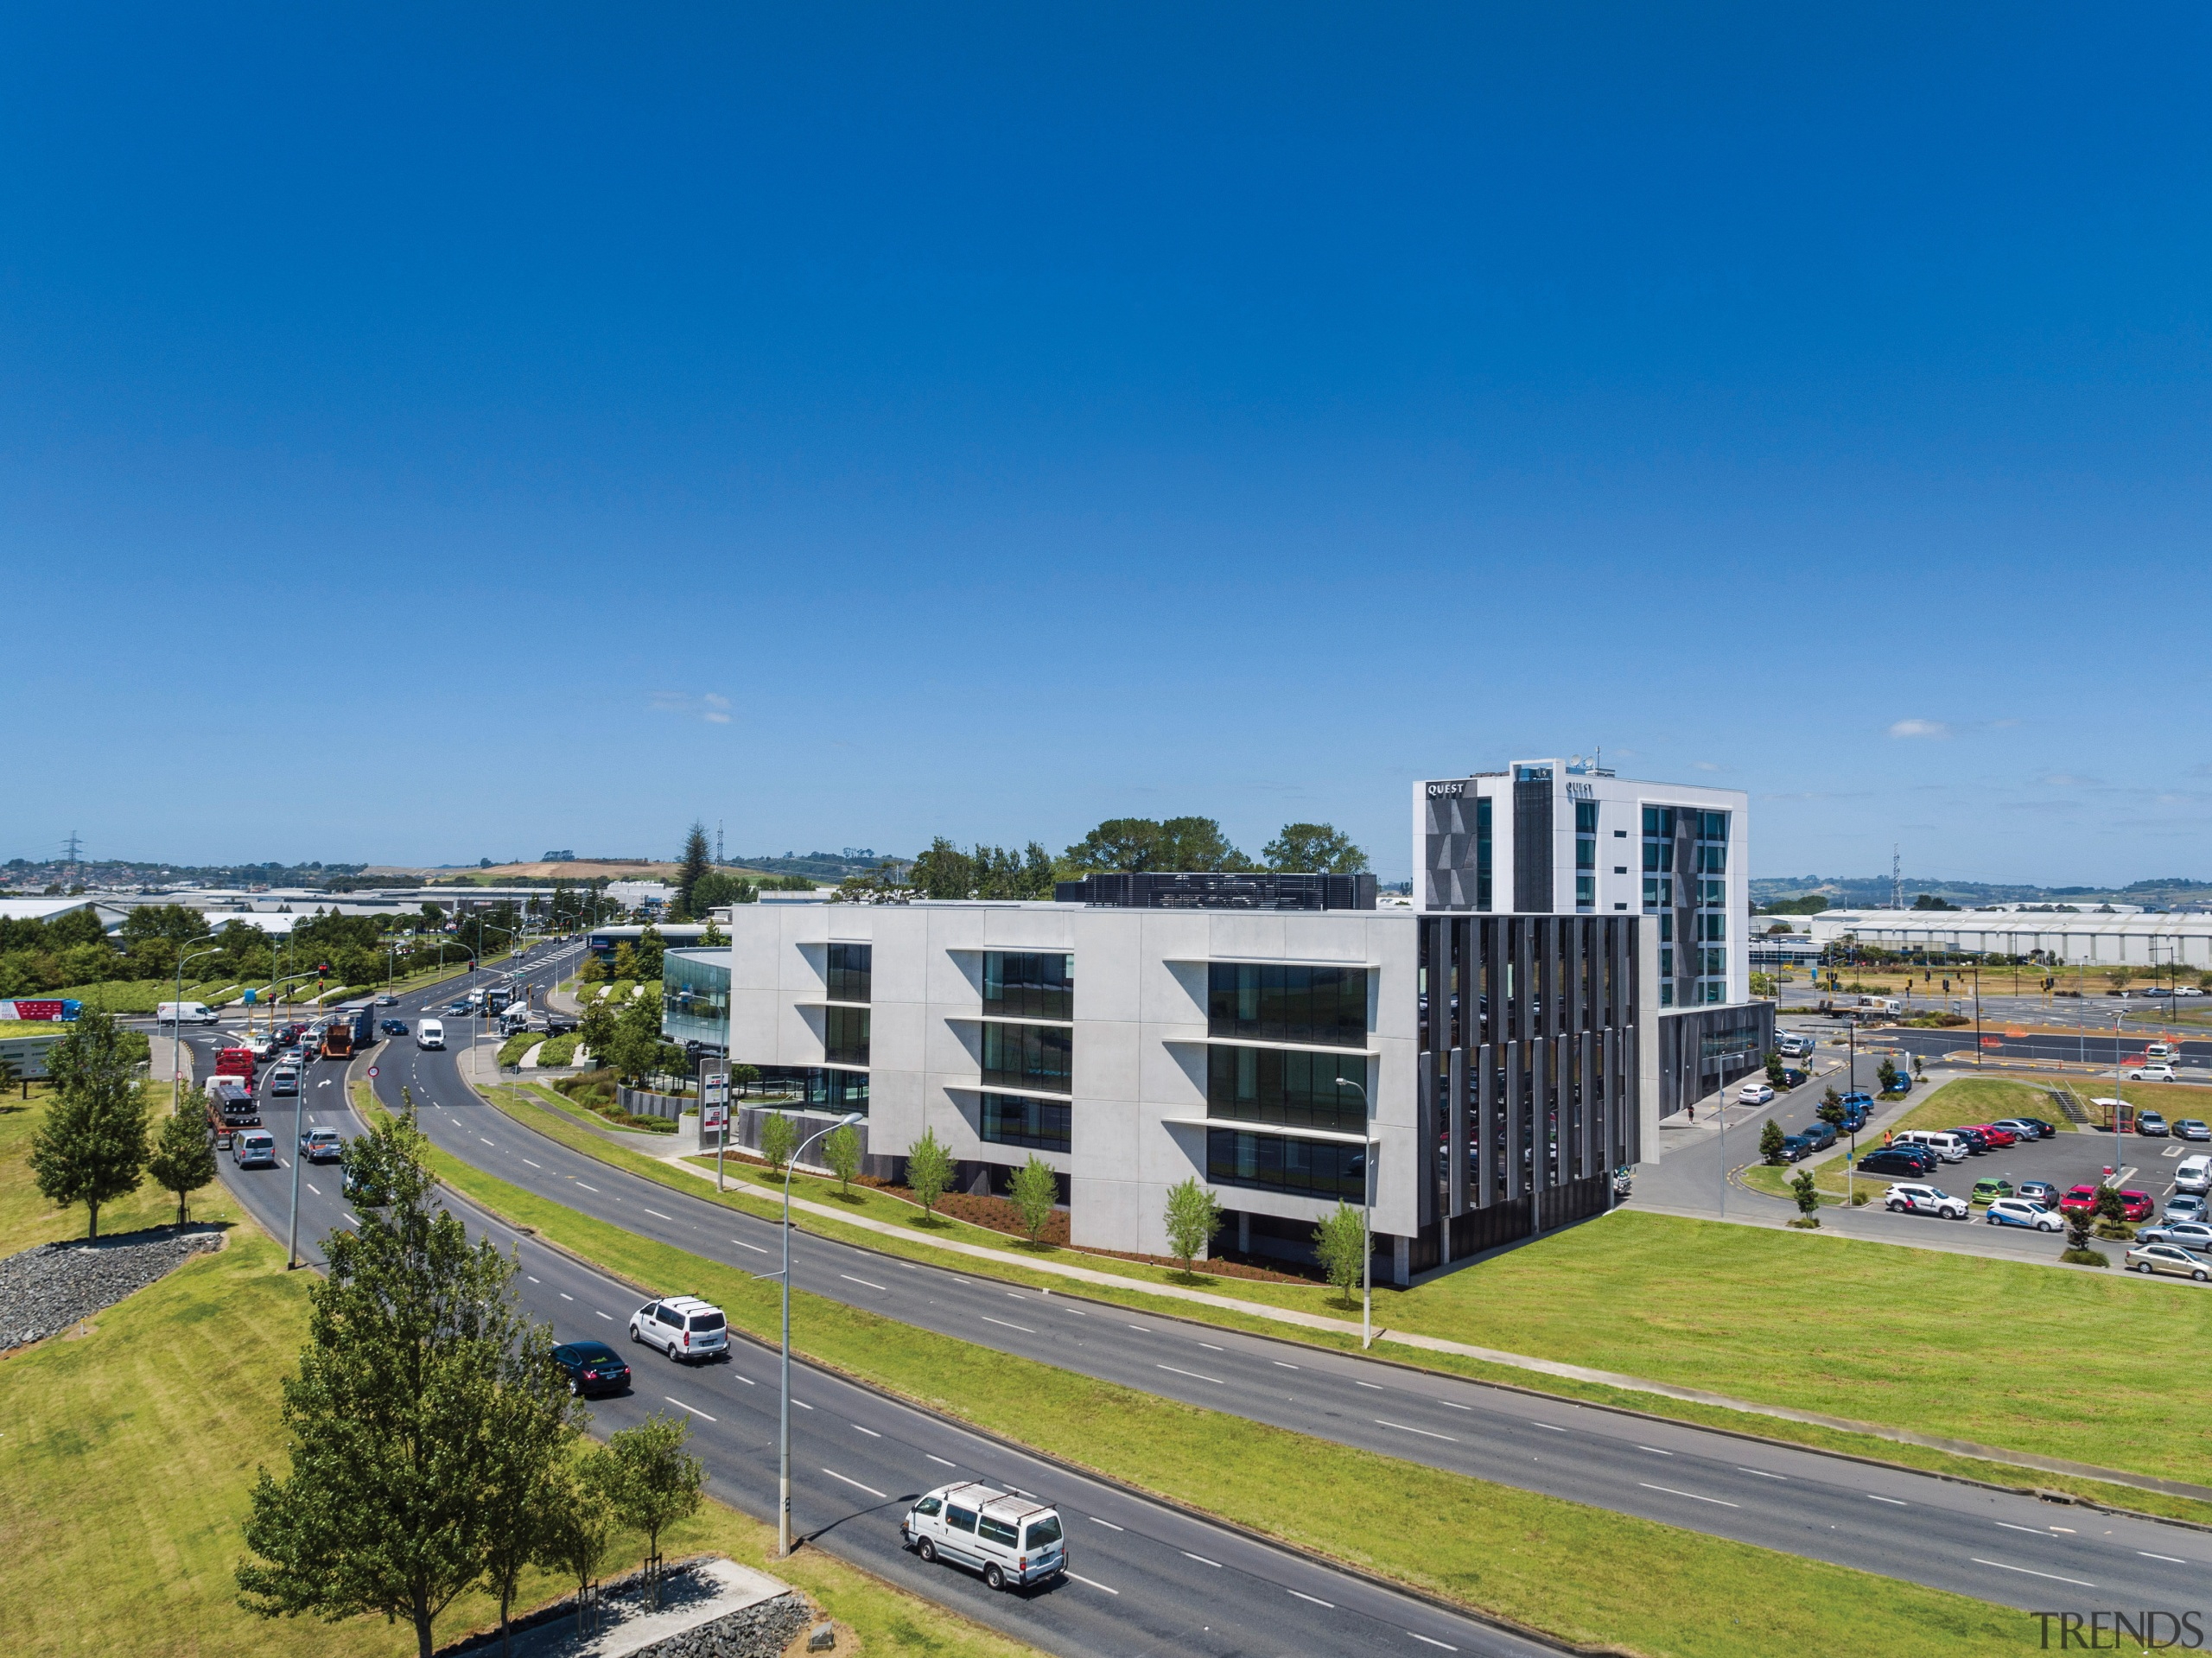 Building Five at the centrally located Highbrook Business bird's eye view, building, city, controlled access highway, corporate headquarters, daytime, highway, infrastructure, lane, metropolitan area, mixed use, real estate, residential area, road, sky, suburb, tower block, urban area, blue